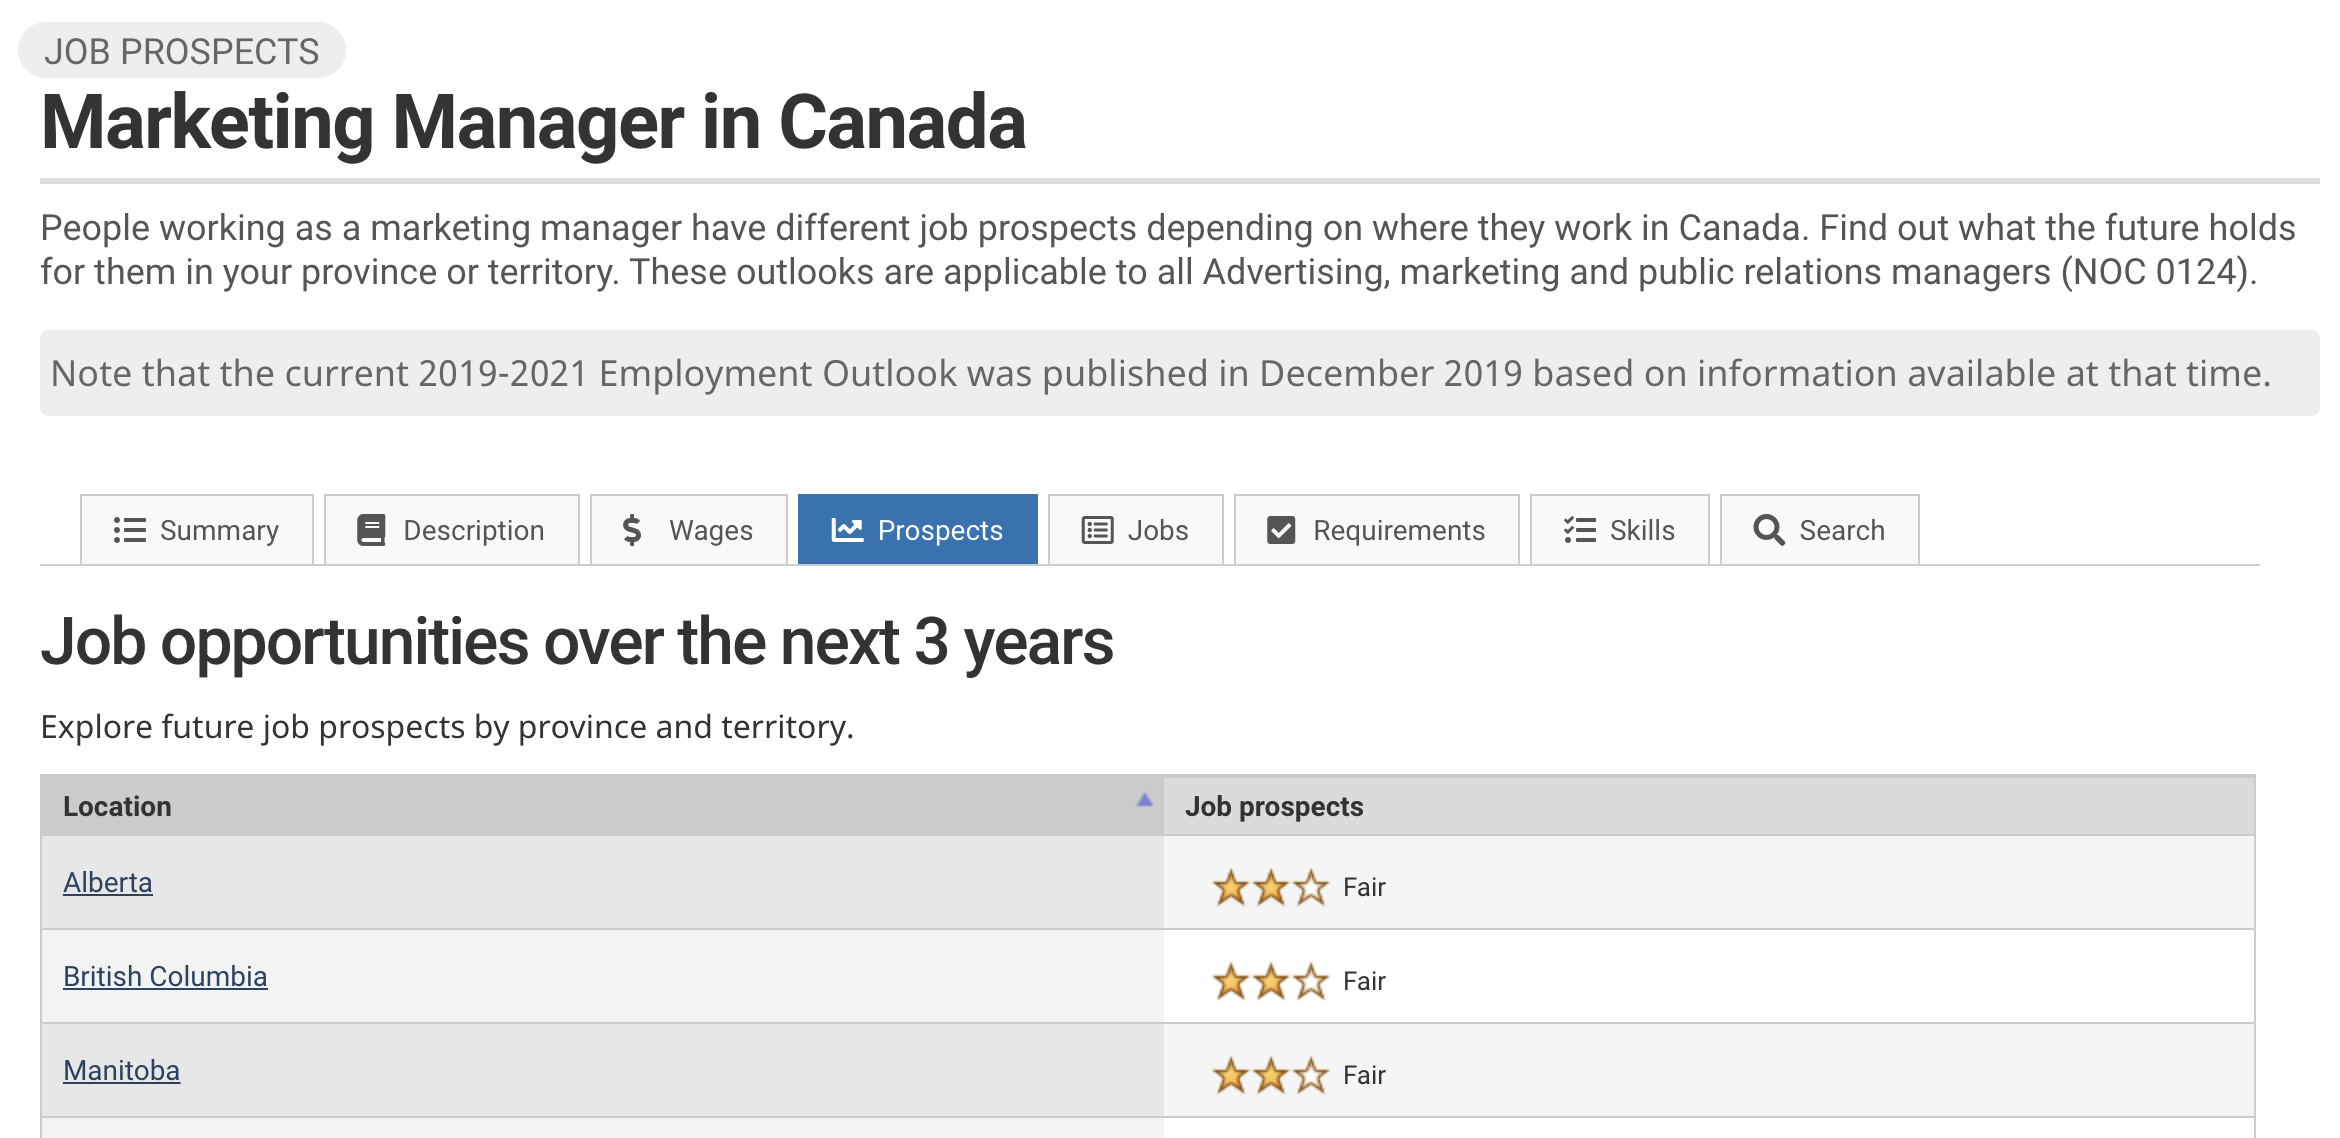 Image showing StatCan job prospects and trends for a Marketing Manager in Canada